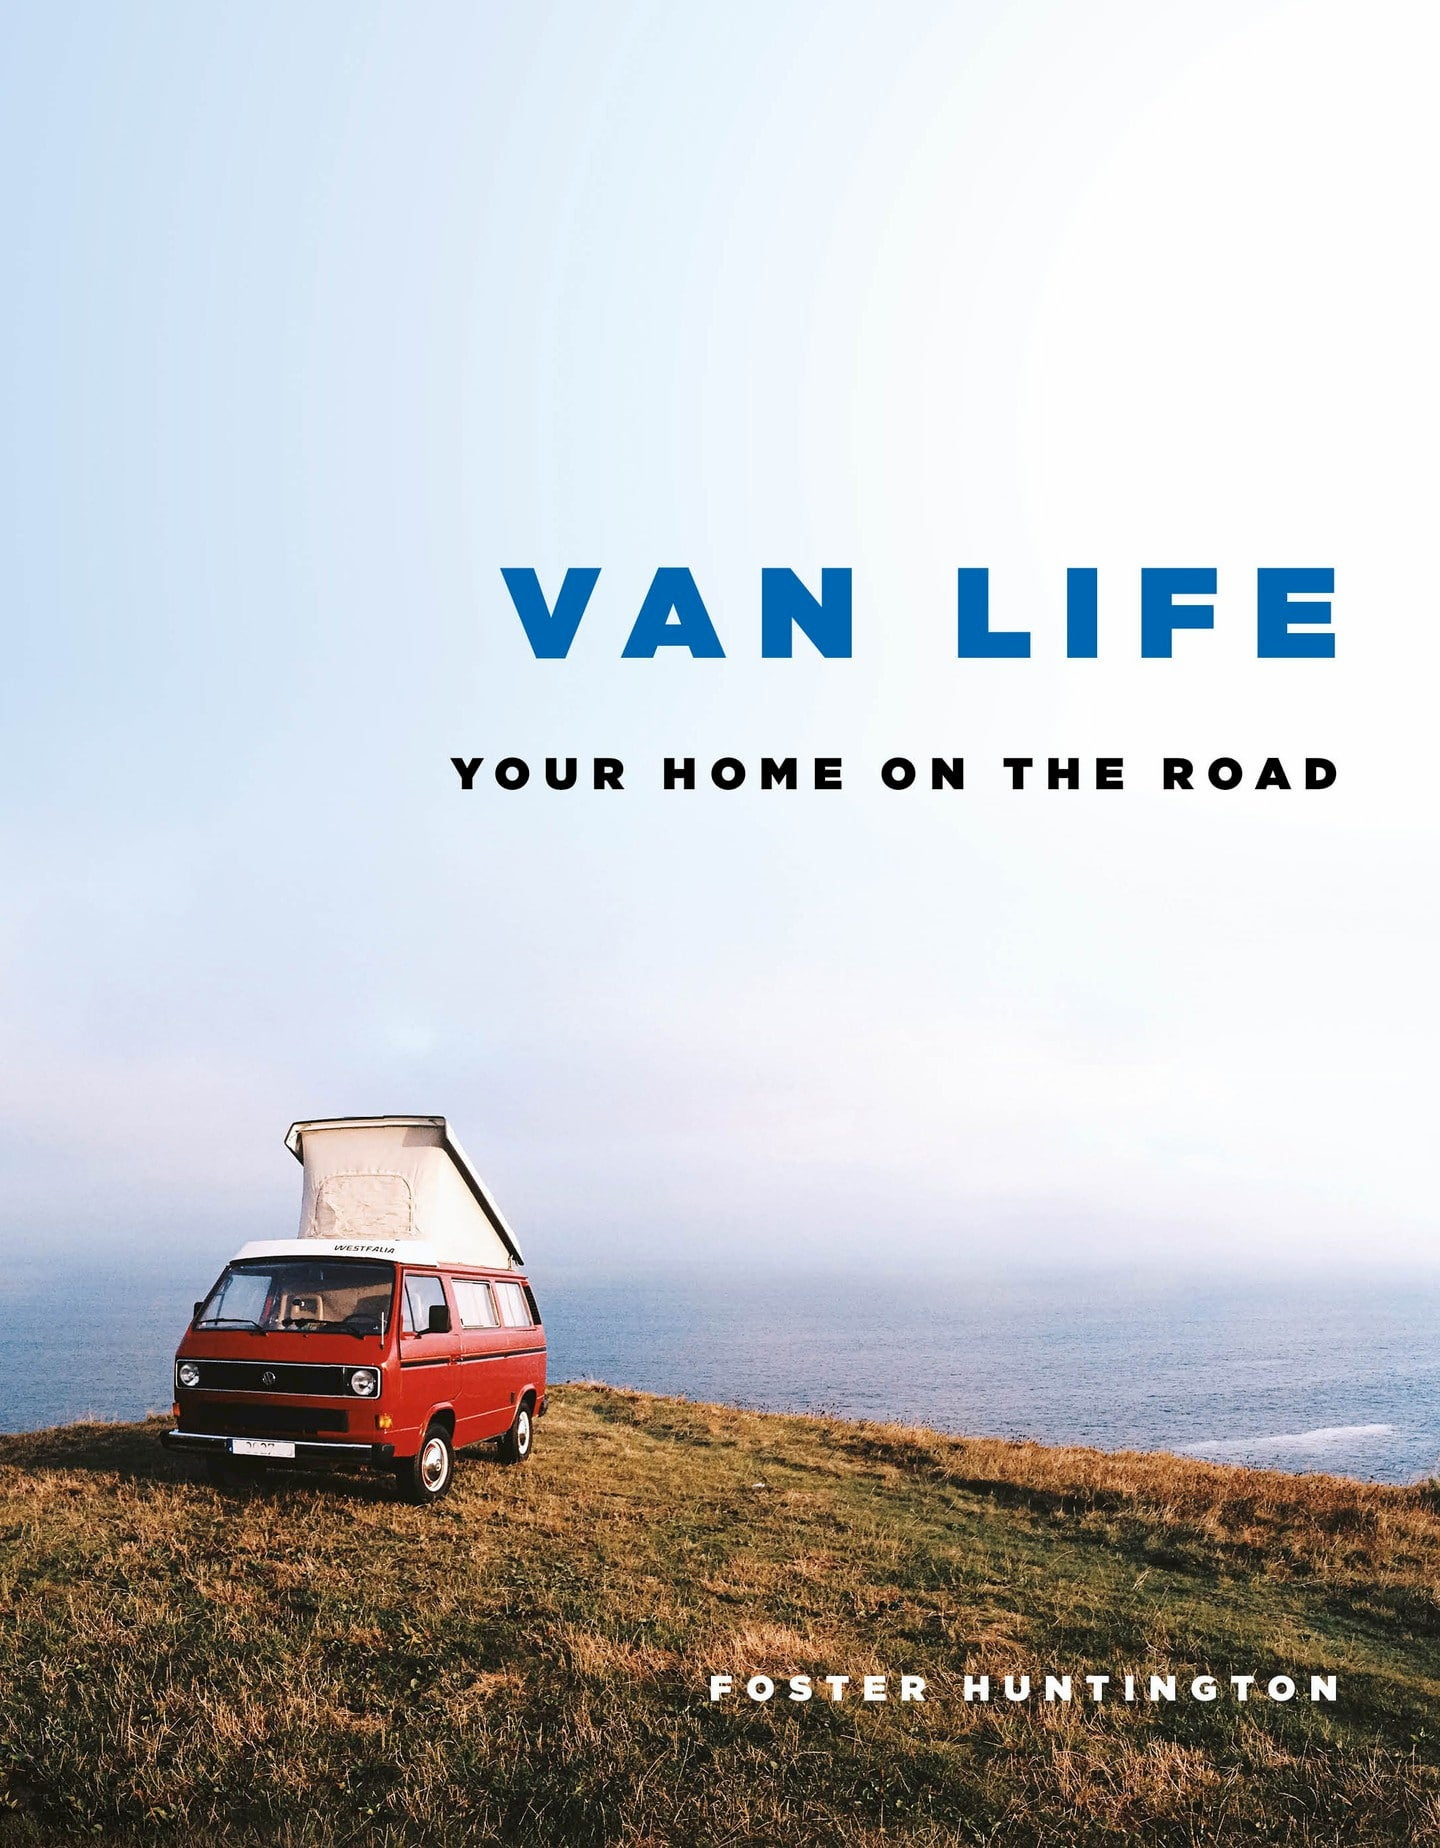 Book with red westfalia van parked beside an ocean on the cover.